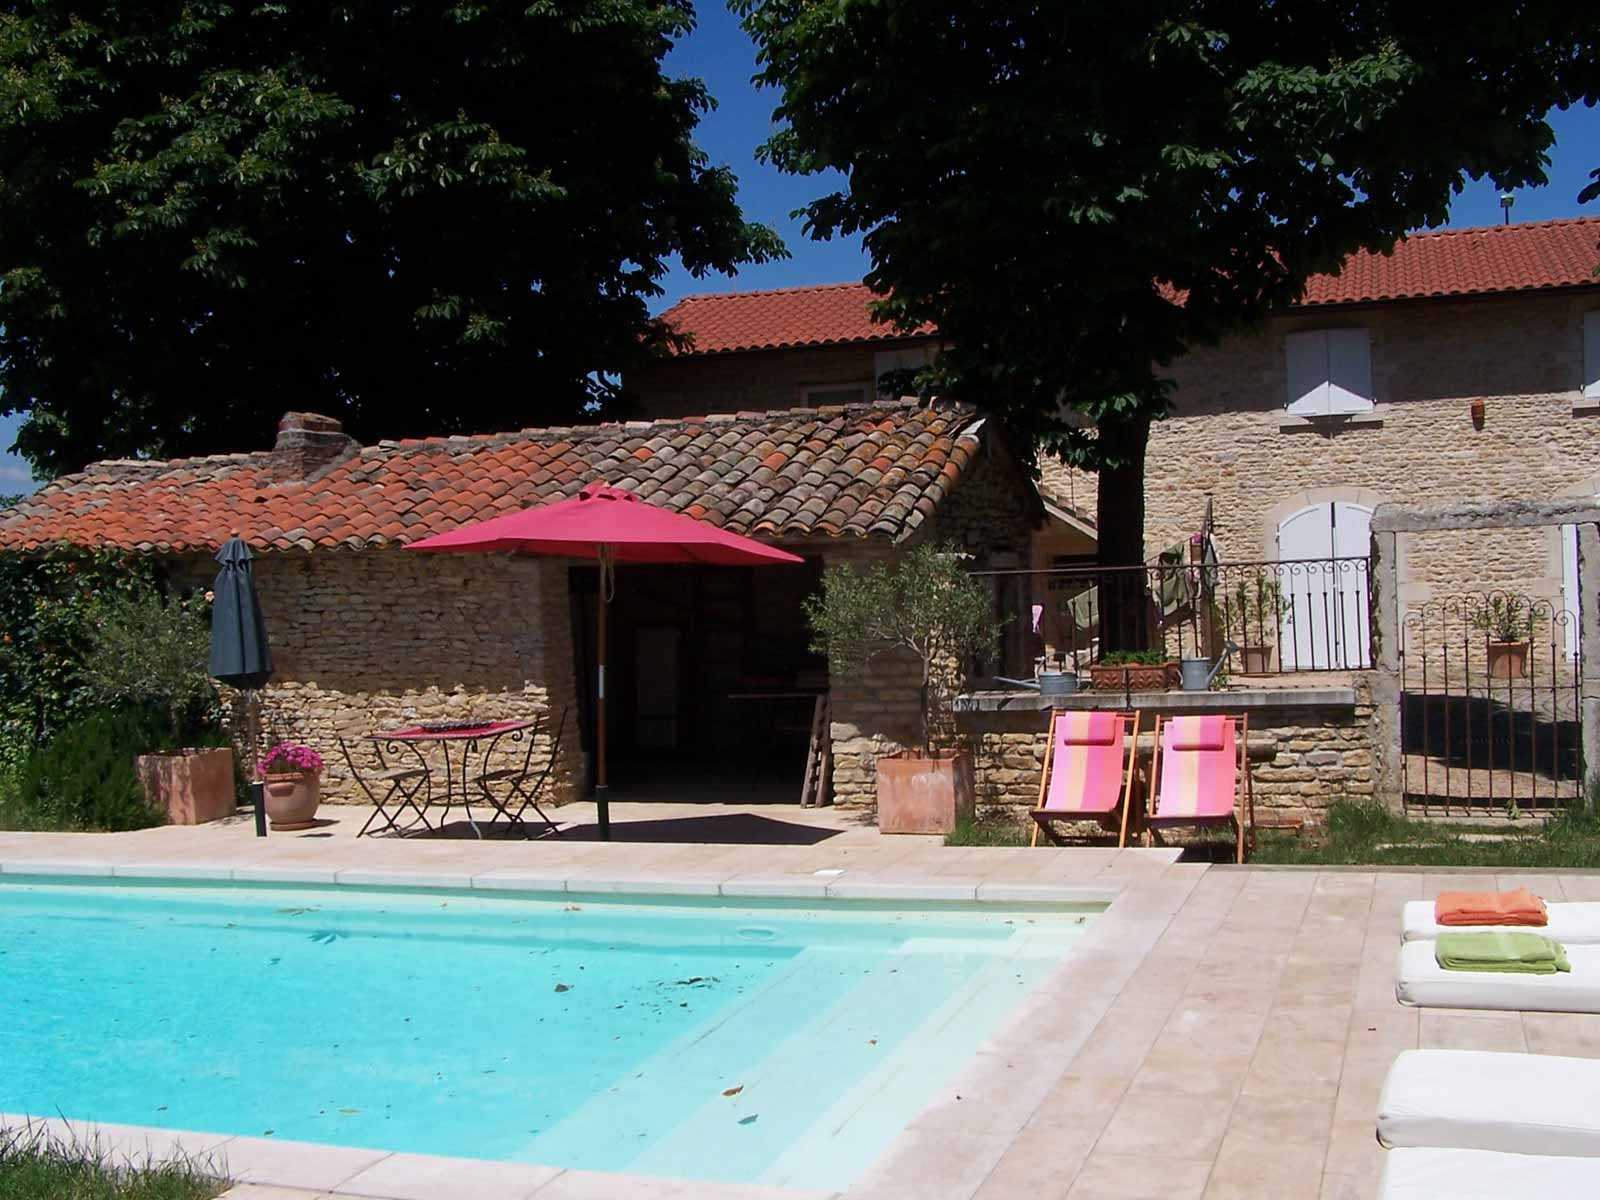 chambres-d-hote-piscine-beaujolais